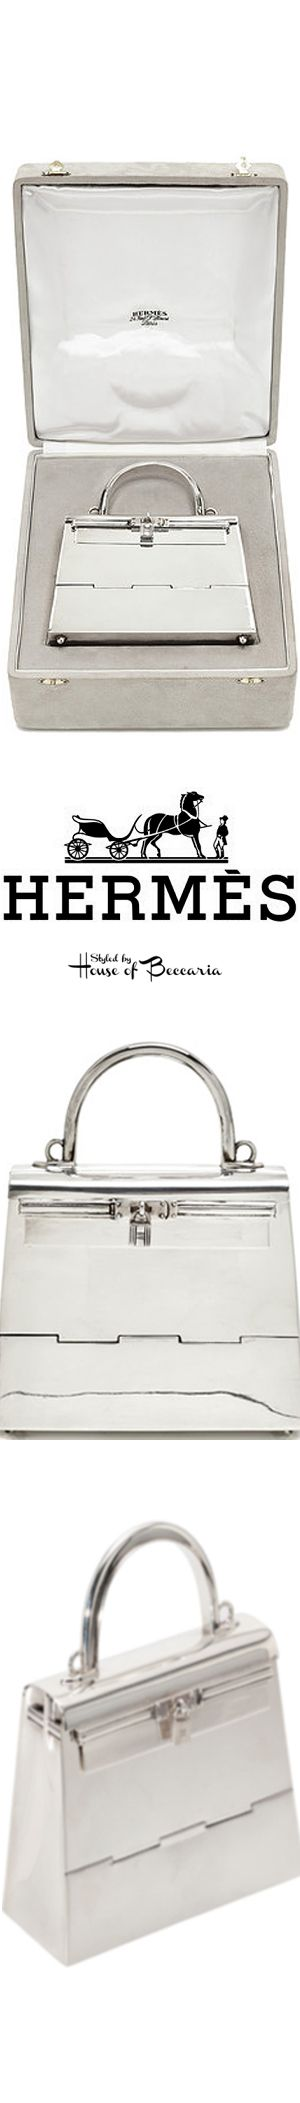 ~Rare Hermès 15cm Sterling Silver Mini Kelly named for the former Princess of the silver screen, and of Monaco, Grace Kelly. Heritage Auction's opening bid, $24,000 | House of Beccaria